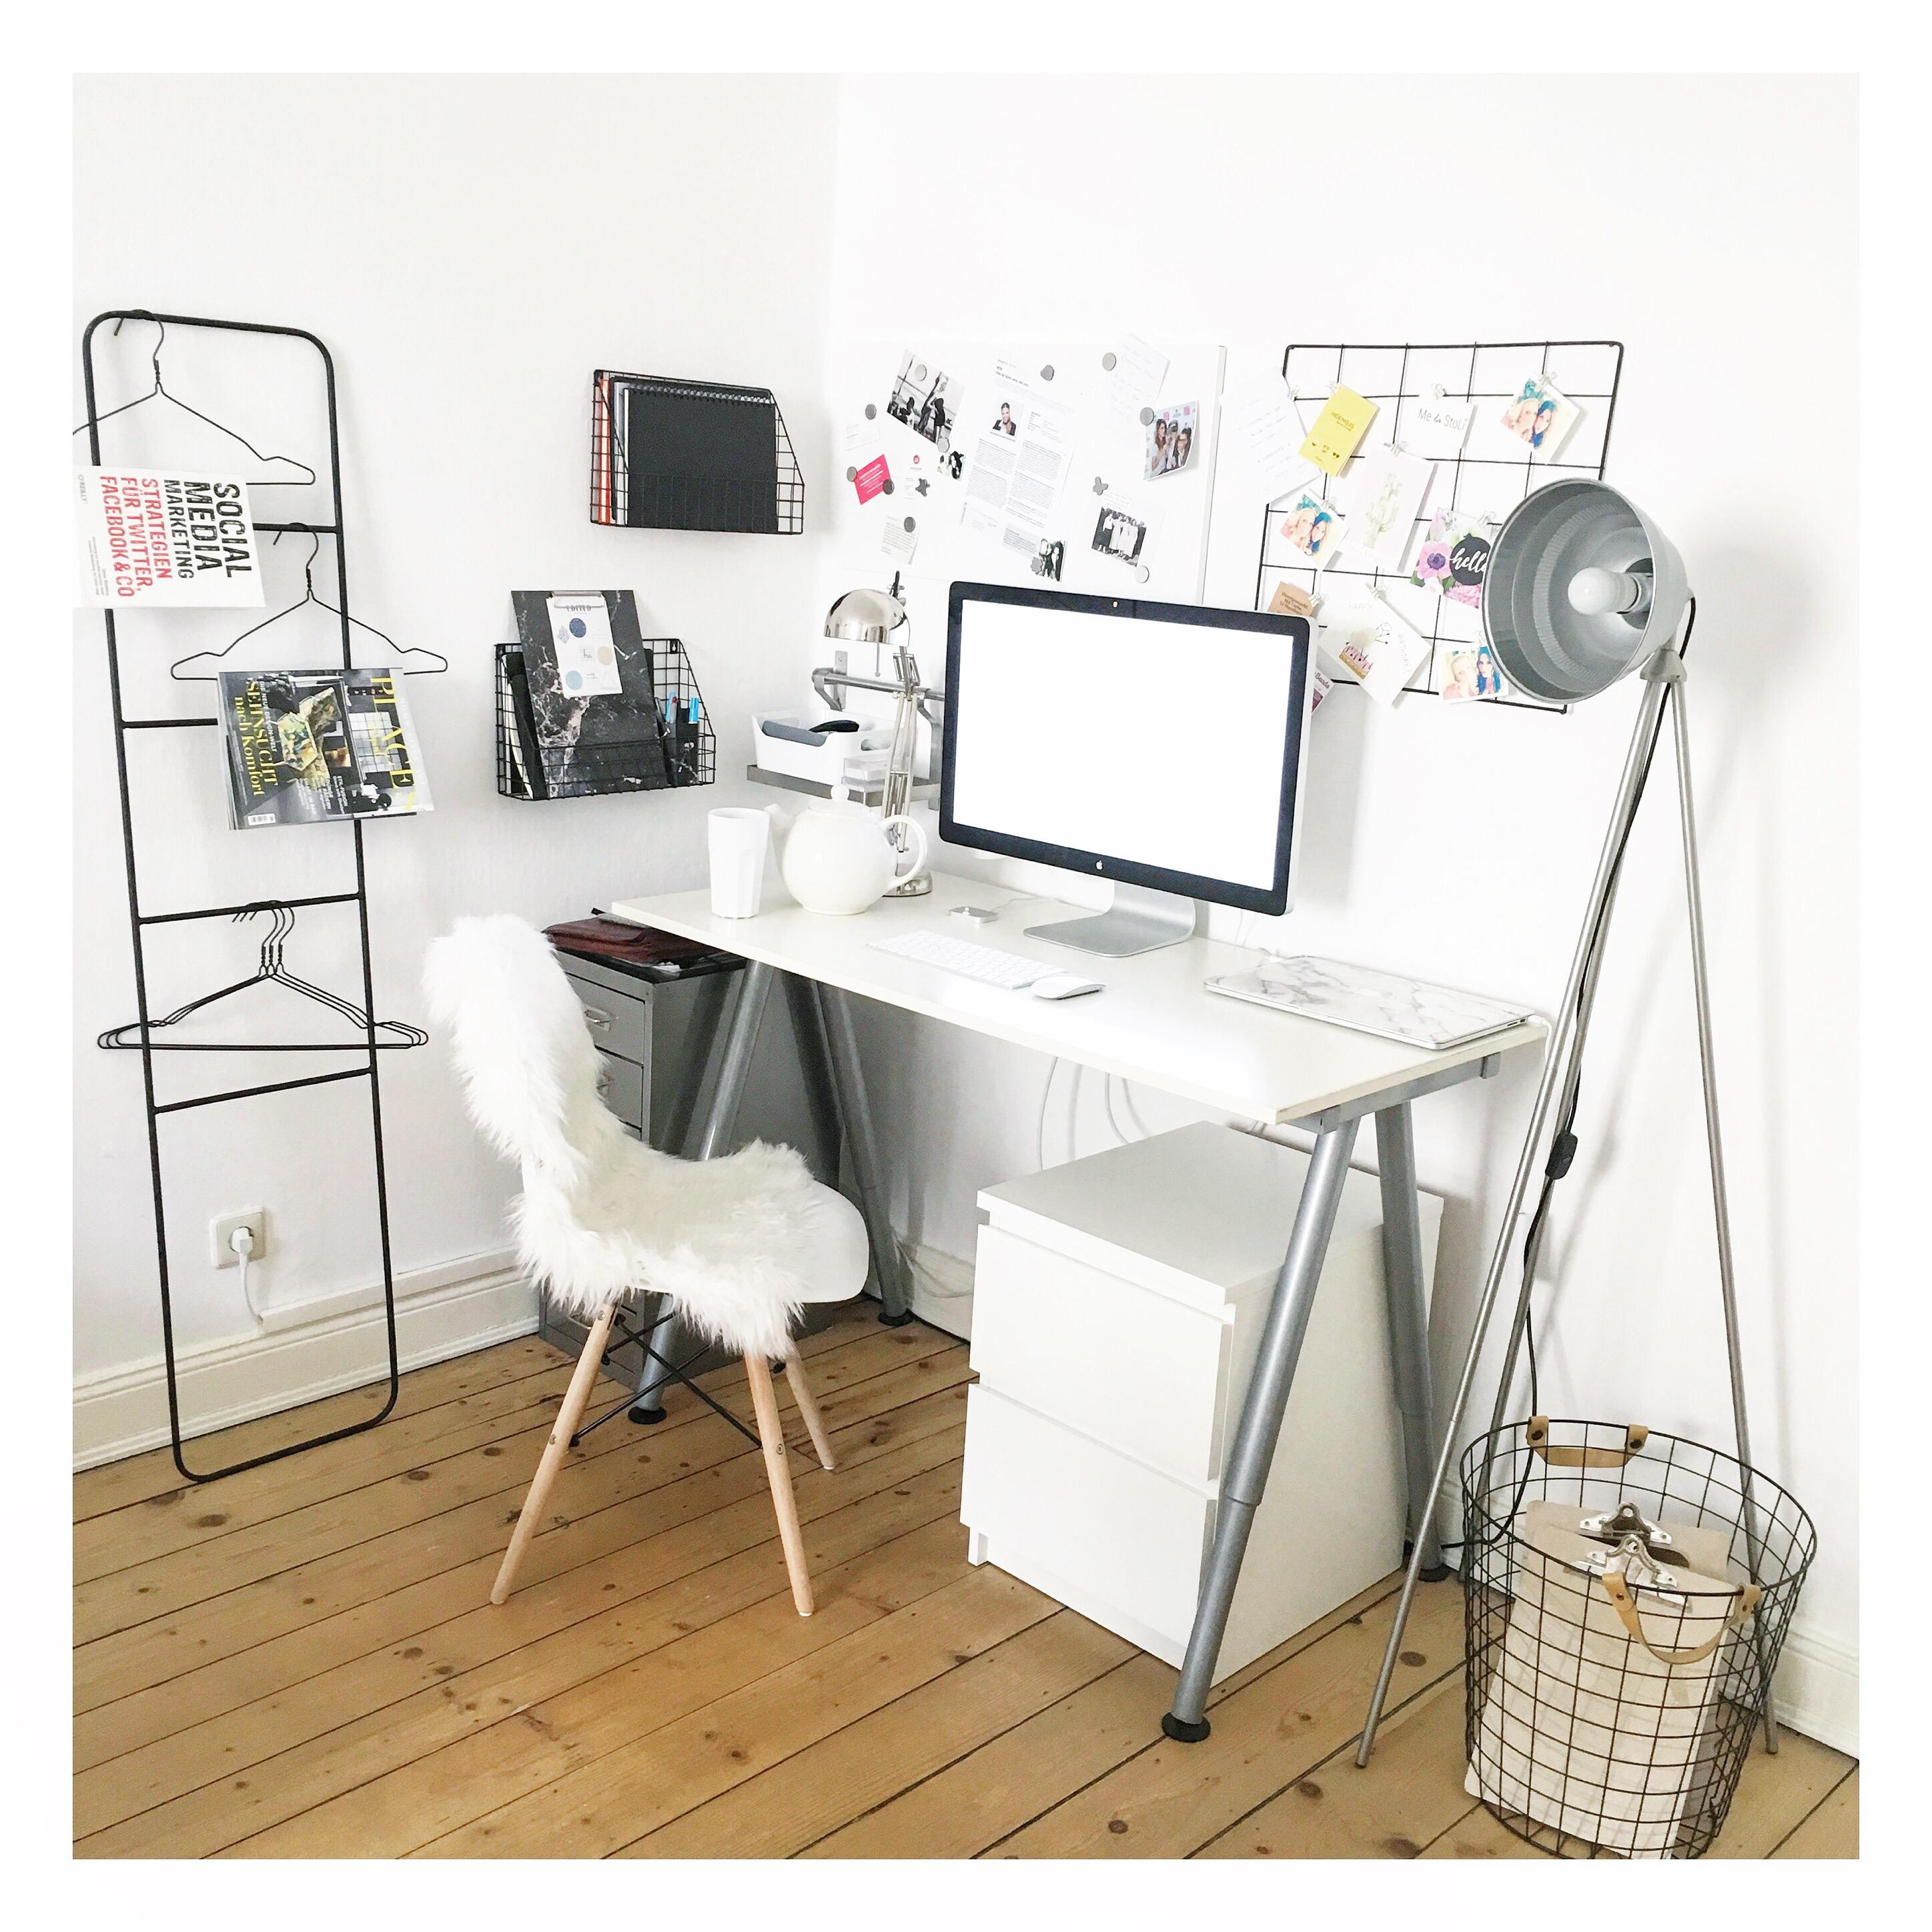 Homeoffice #workplace #homeoffice #arbeitsplatz #decoration #homesweethome #interieurdesign